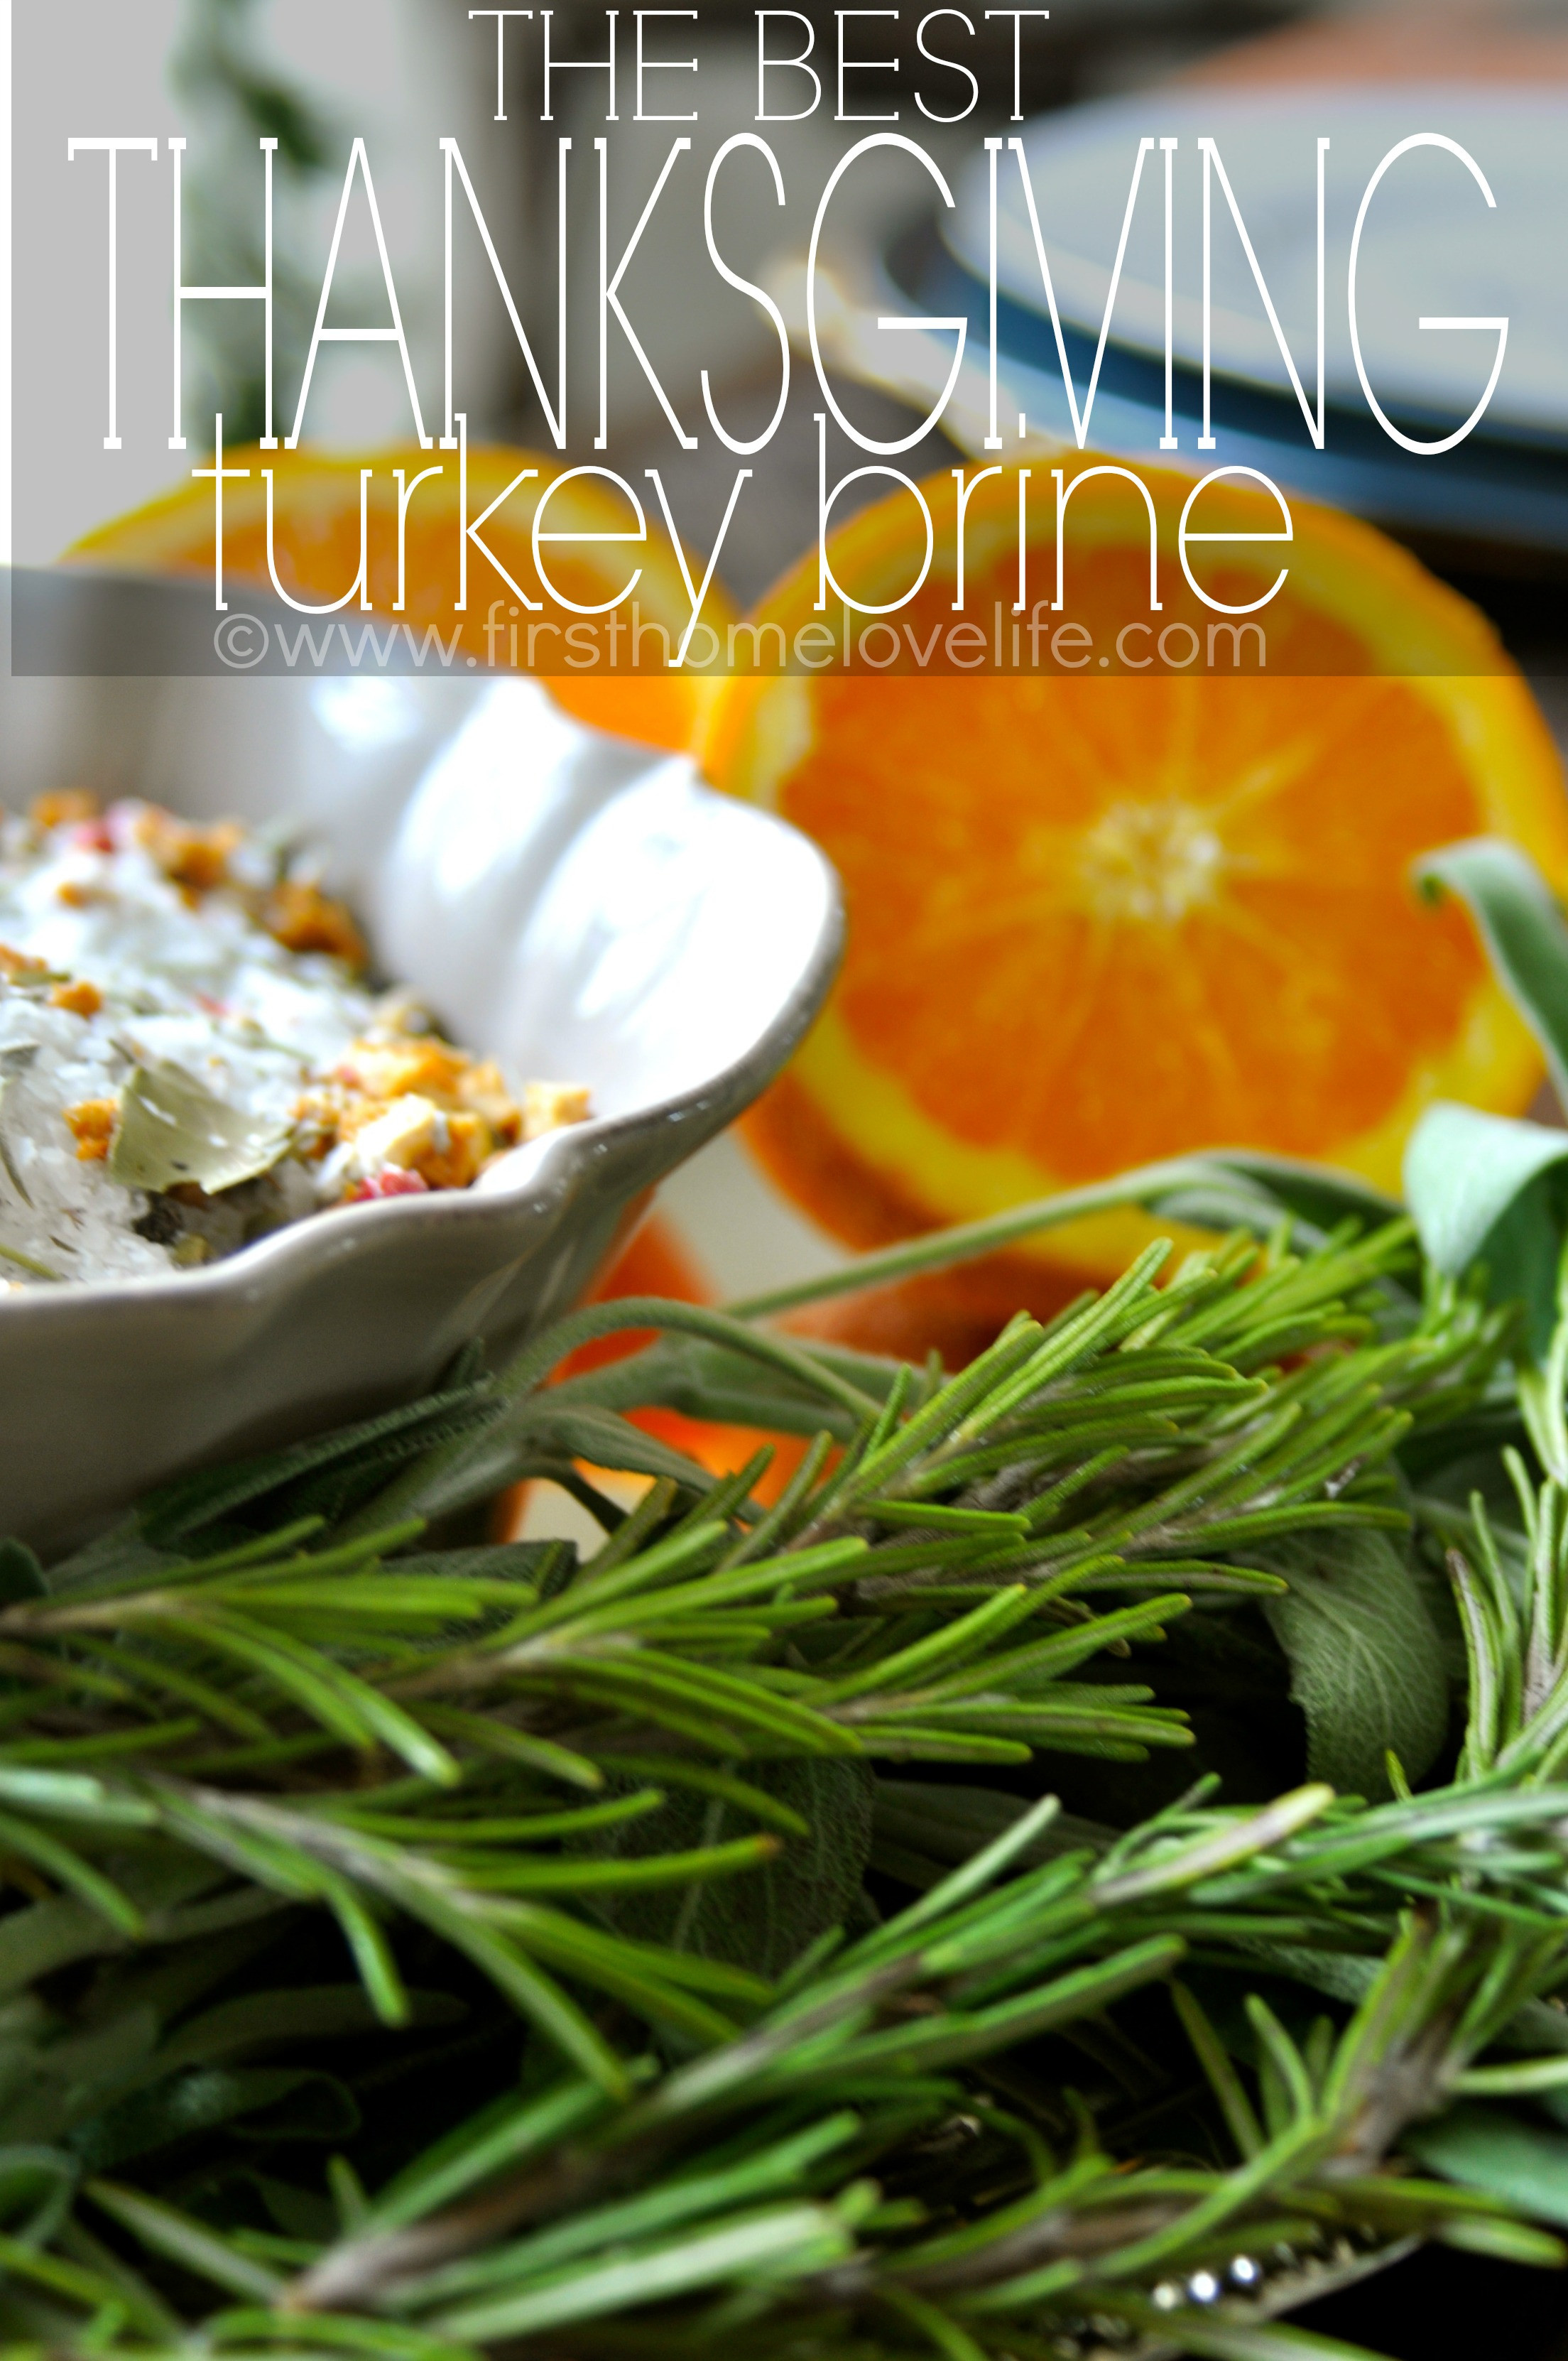 Best Thanksgiving Turkey Brine  The Best Thanksgiving Turkey Brine First Home Love Life